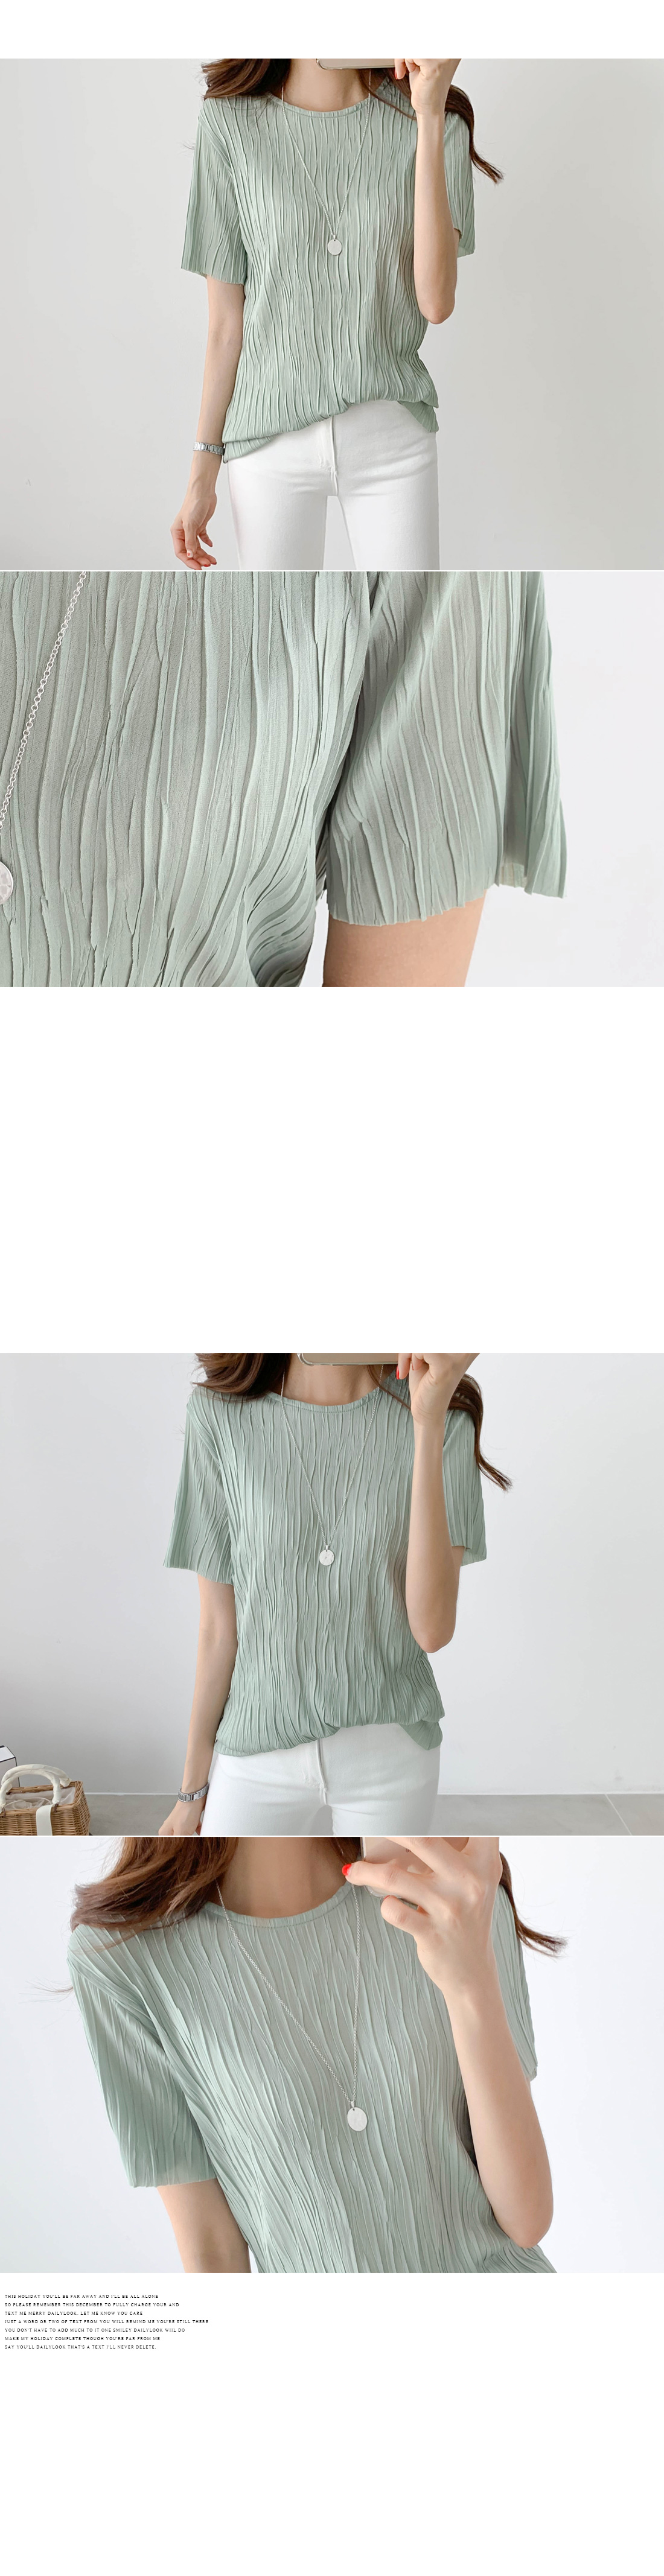 Pleated round blouse #44539